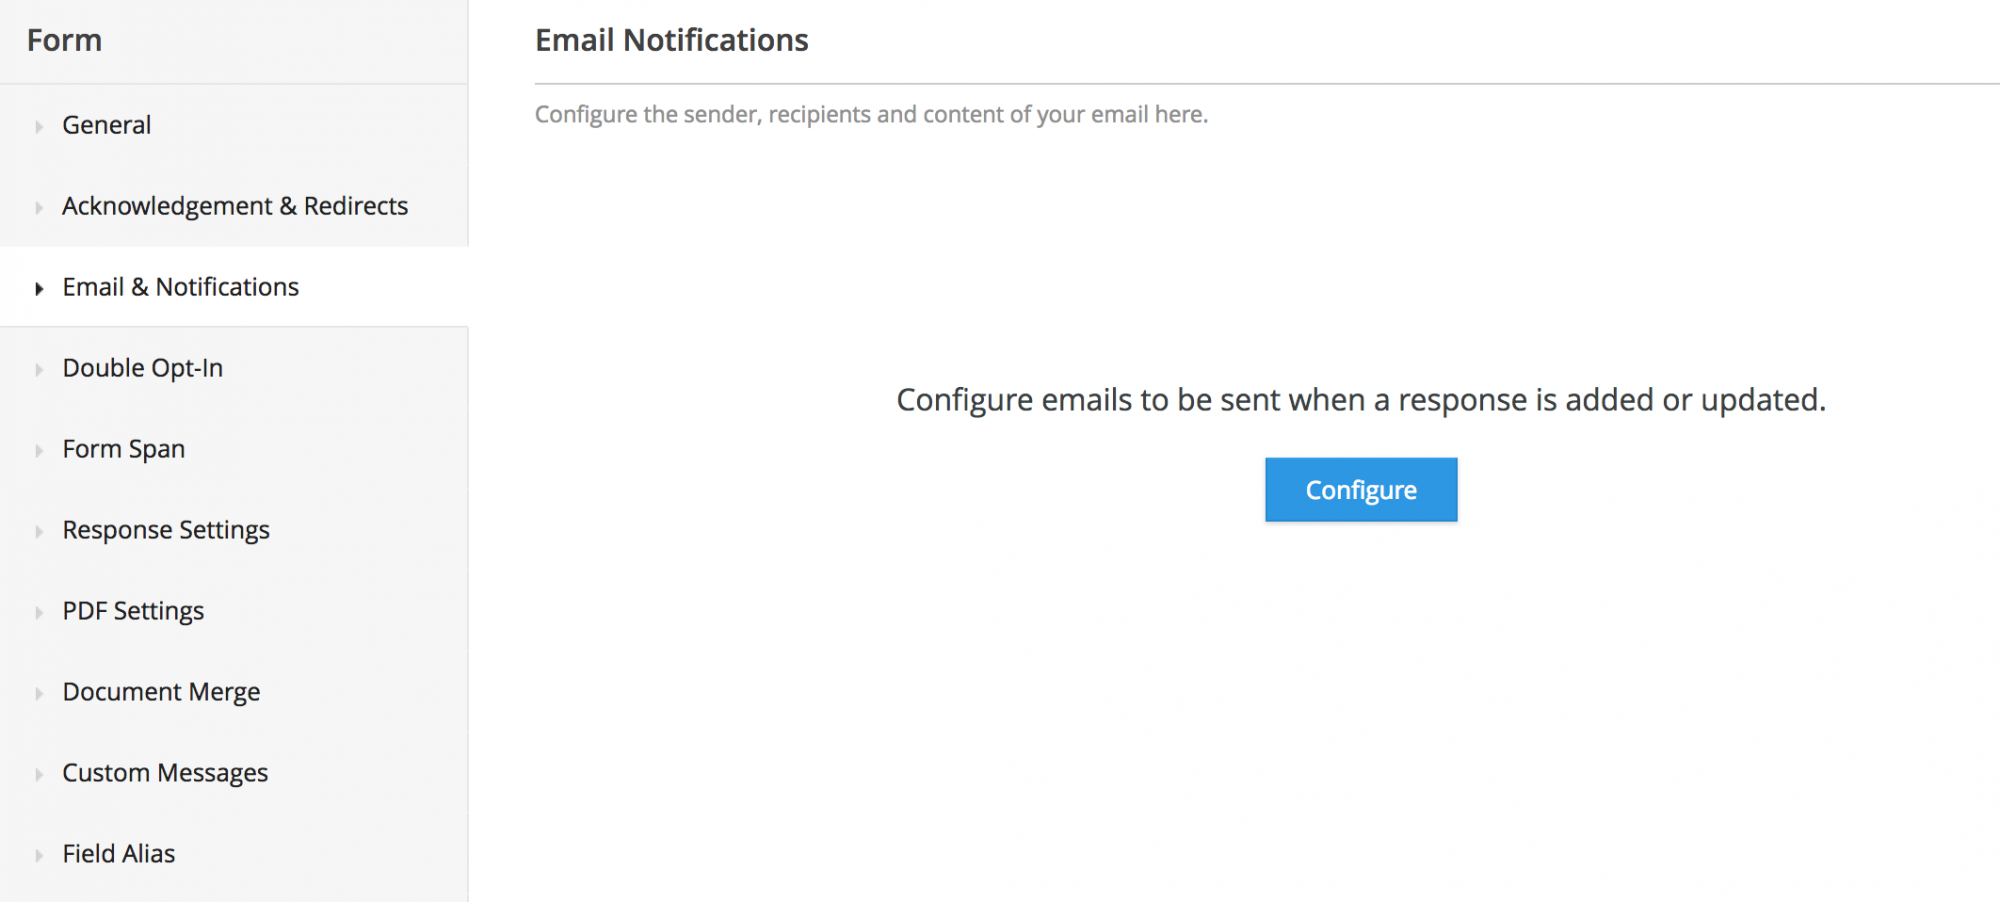 Email Notifications | Zoho Forms - User Guide